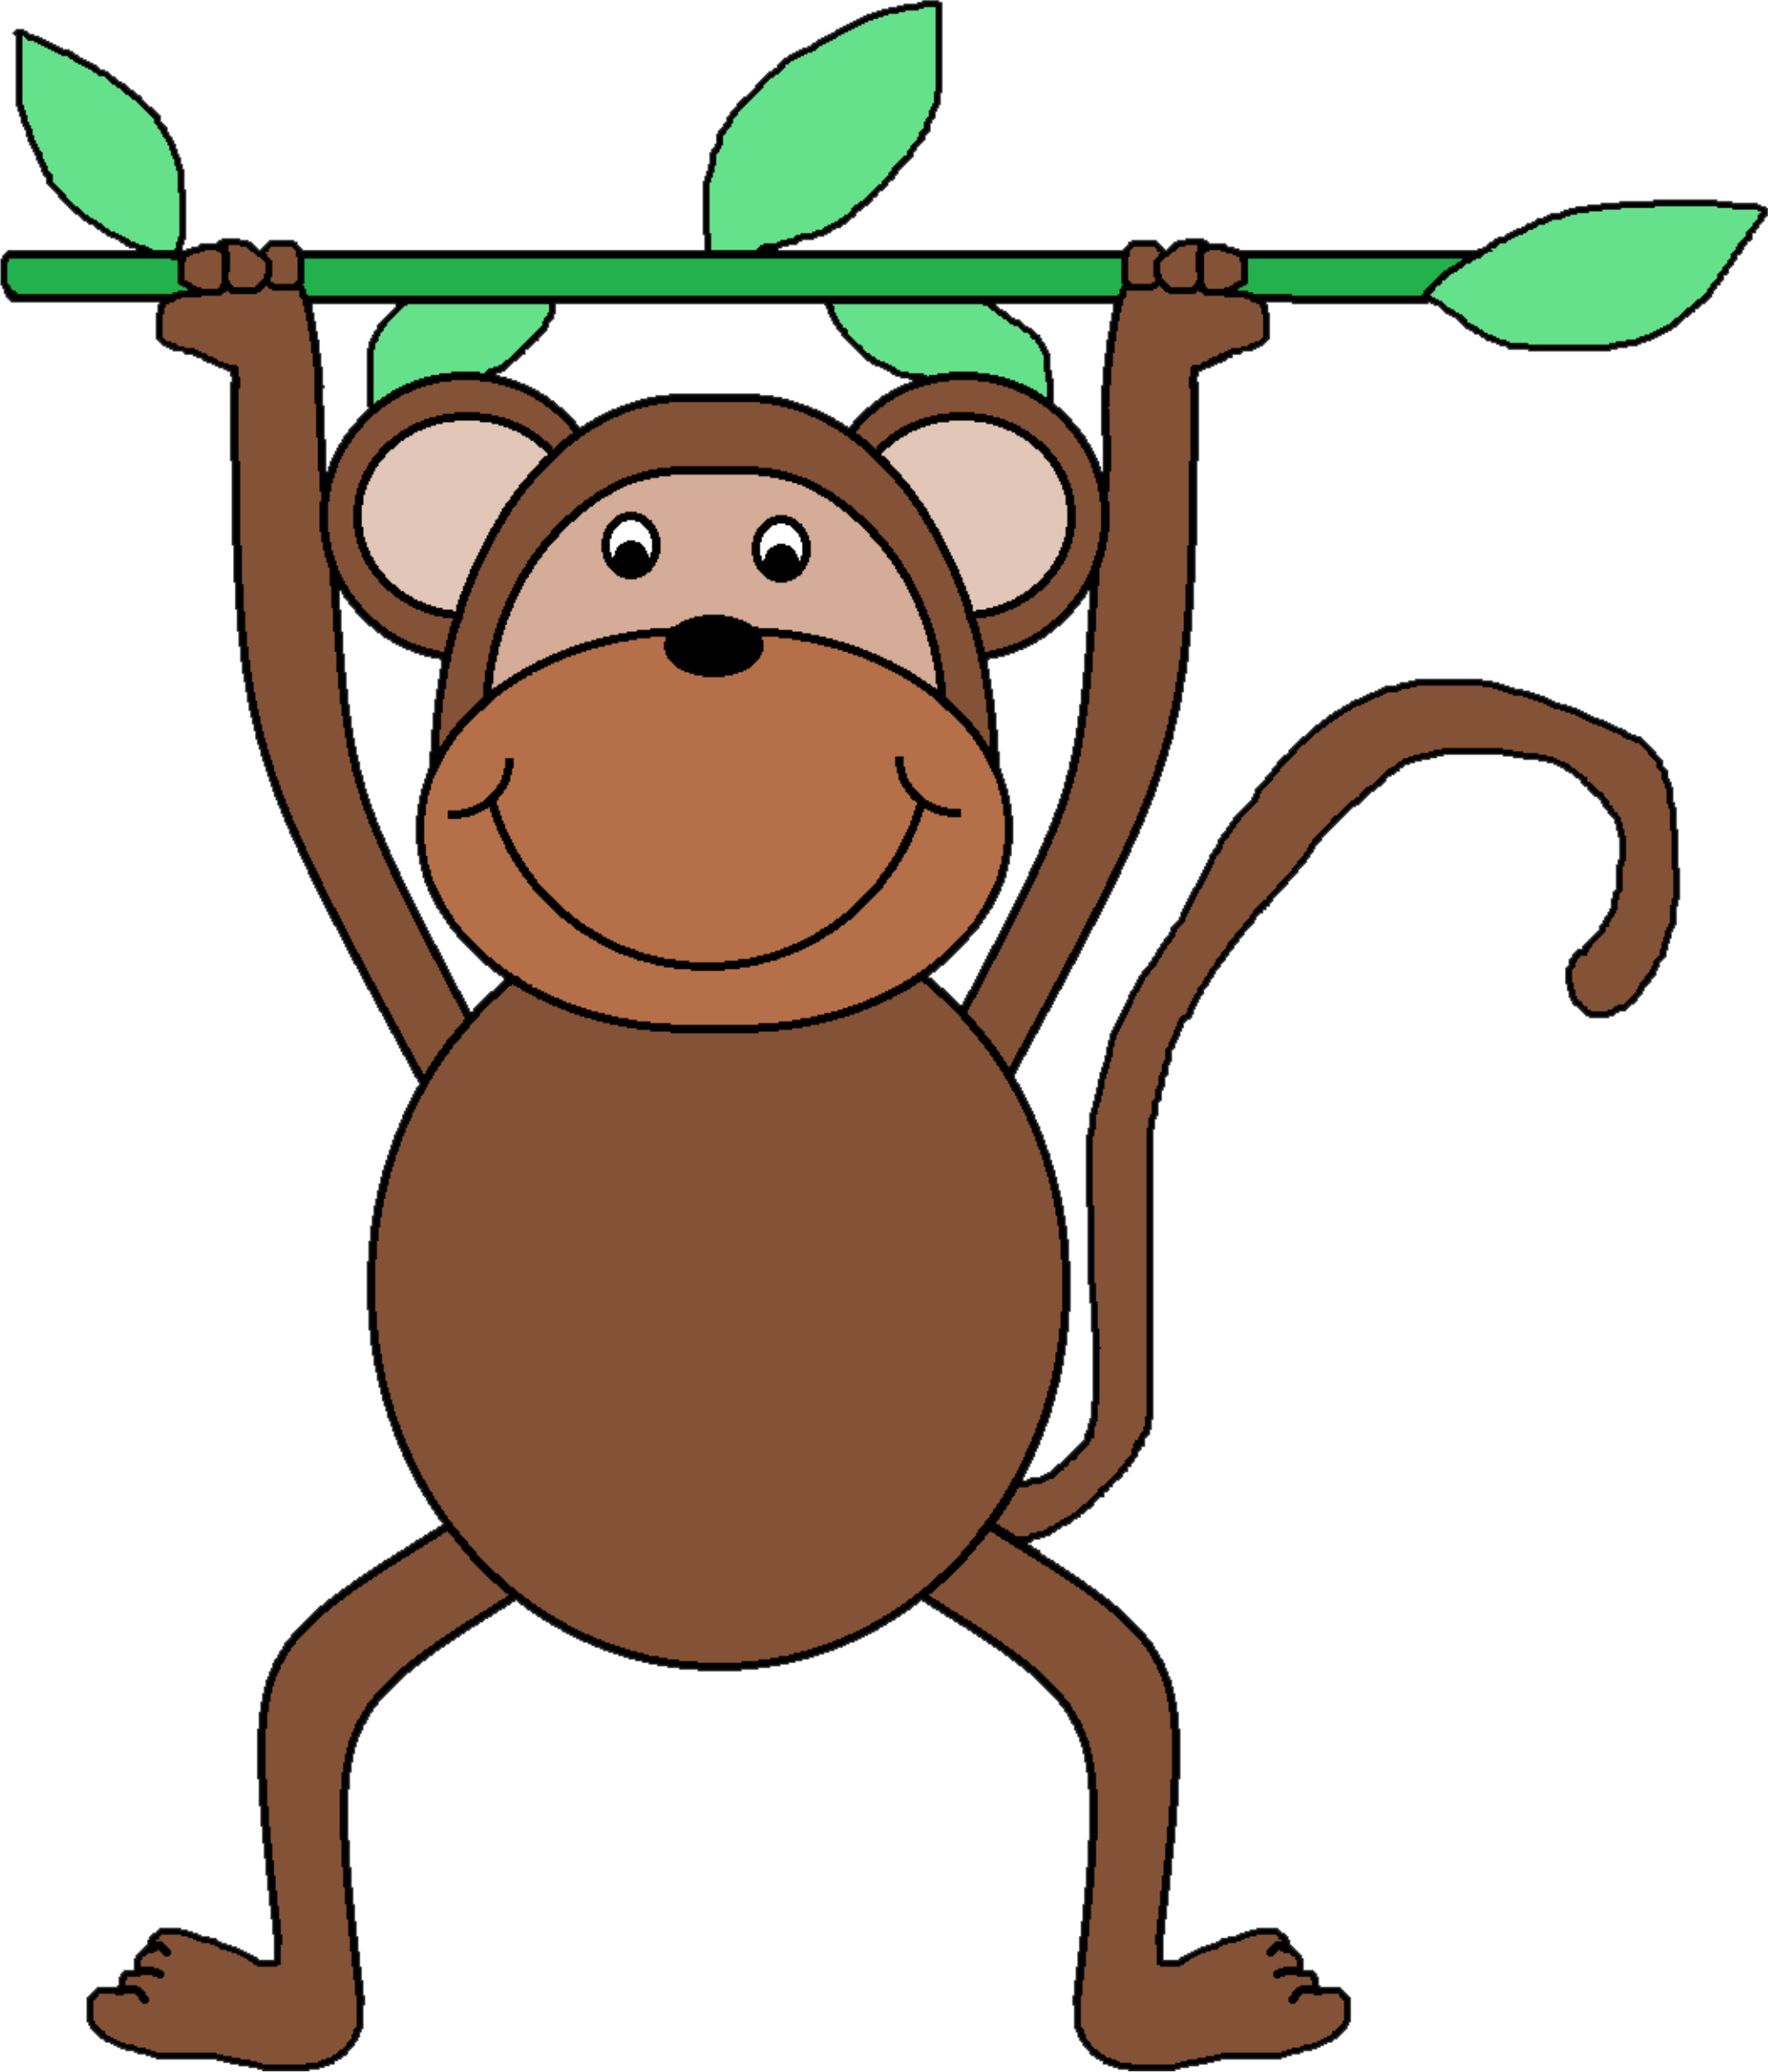 Hanging out with clipart. Monkey clip art by